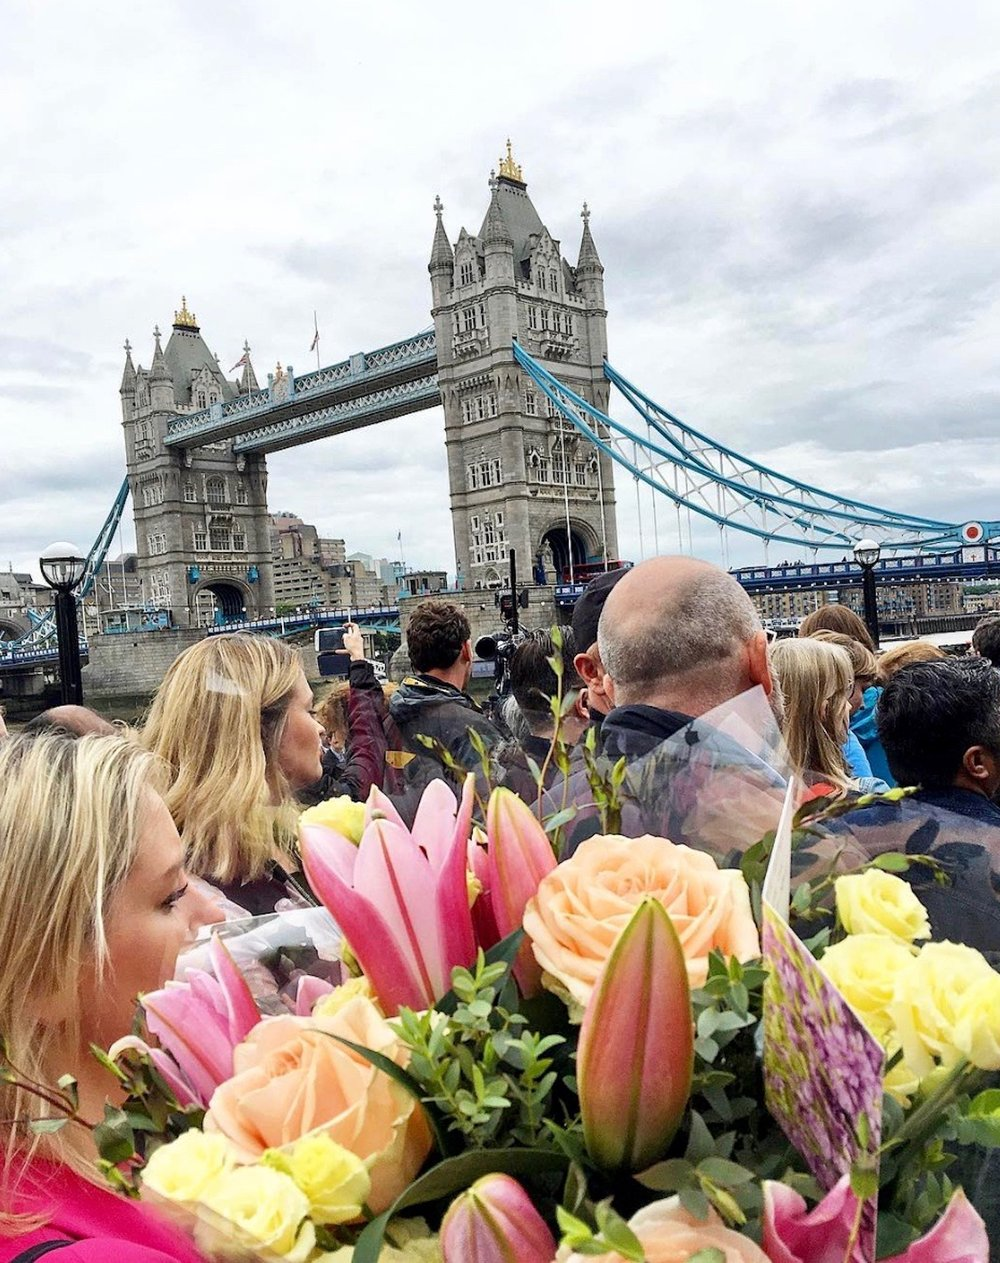 Carrying Flowers. Paying respects to the victims of the London Bridge Terrorist attack.